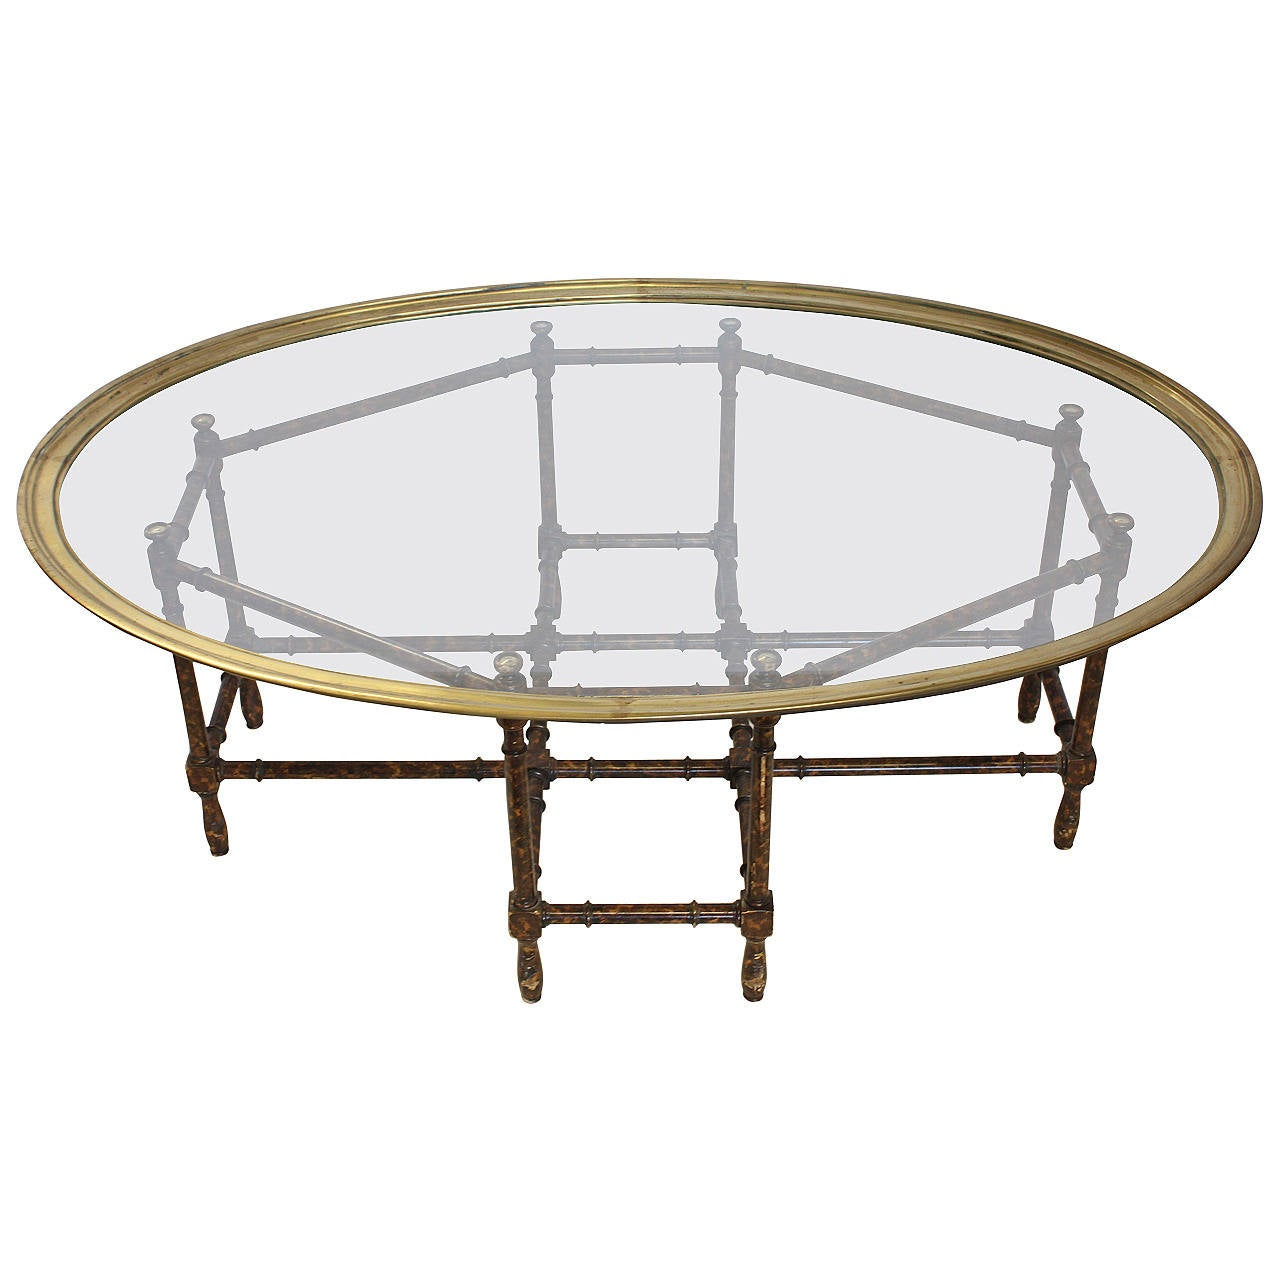 Stylish Coffee Table By Baker For Sale At 1stdibs